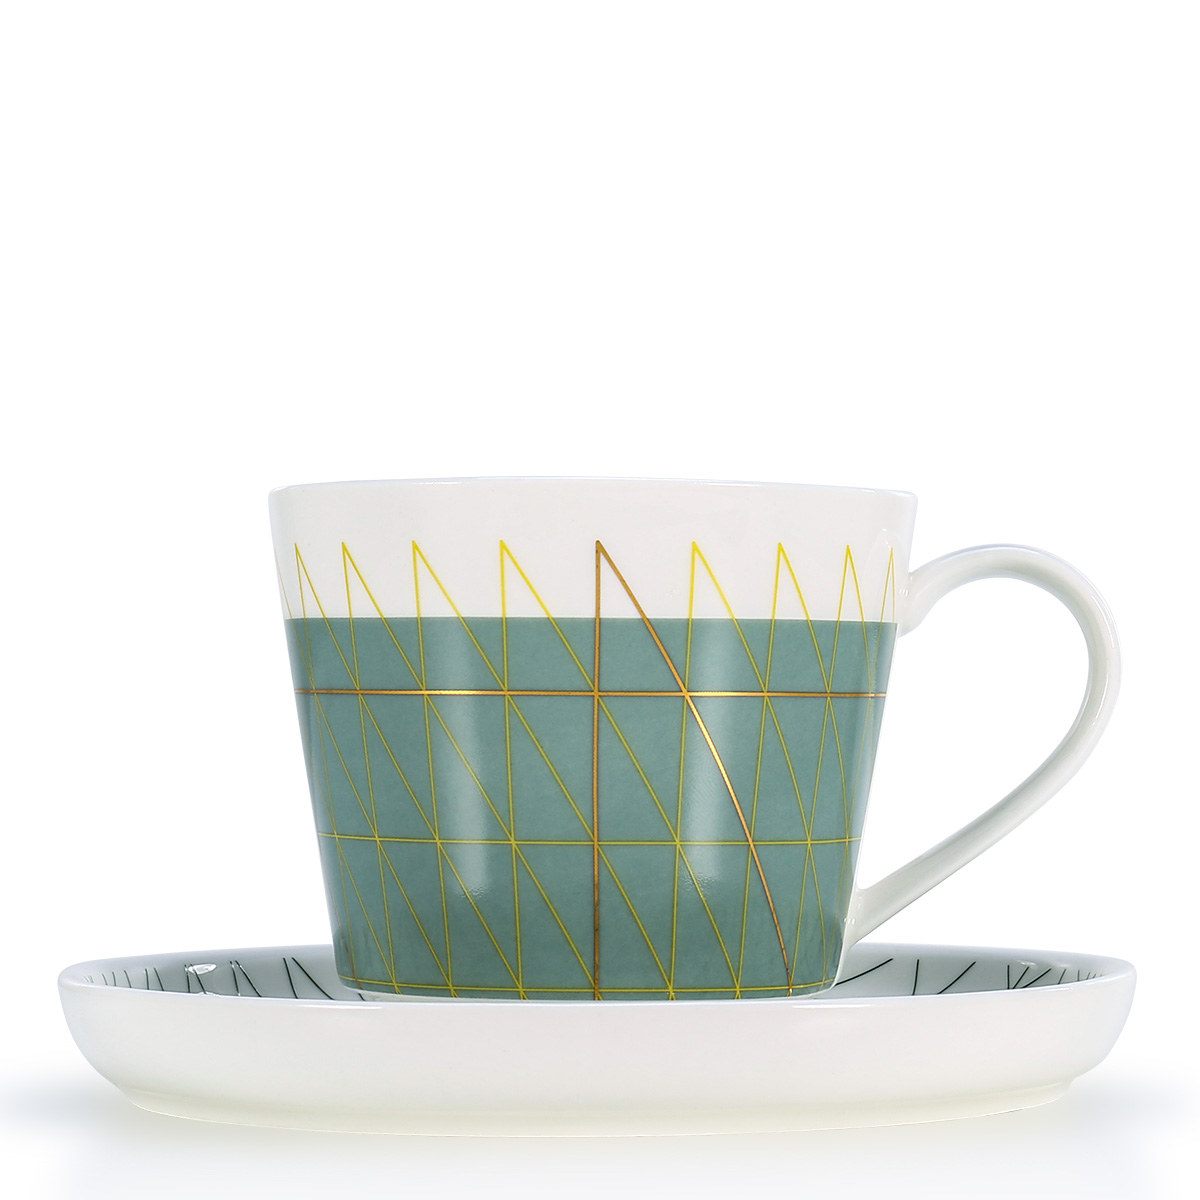 Coffee Cup And Saucer Teacup Set Microwave Safe Or Espresso